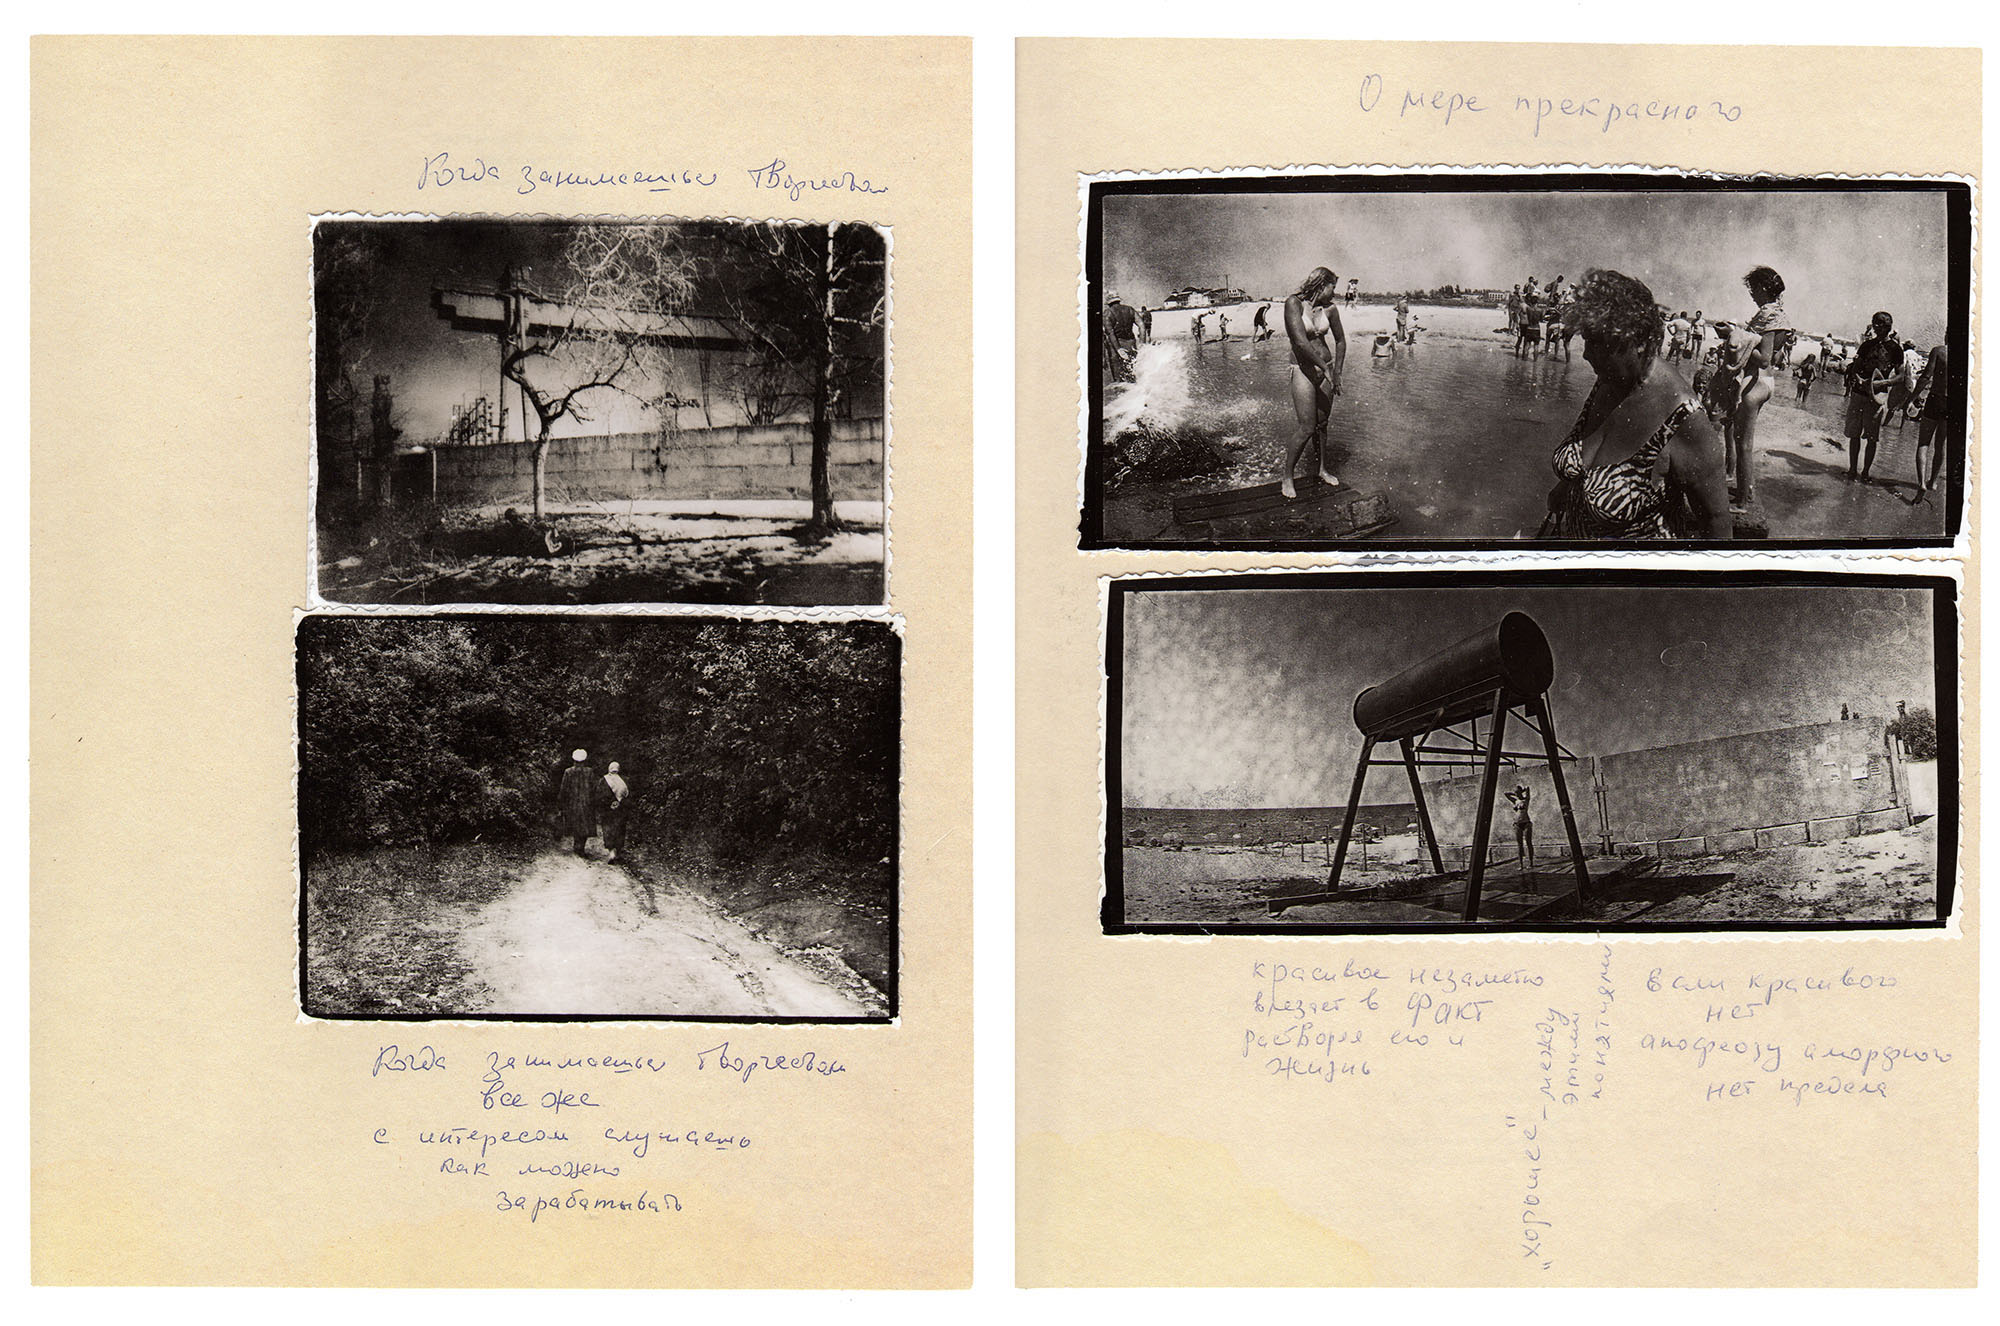 photography dissertation examples If you've taken on writing a thesis on photography, there are quite a few questions you can explore in your paper check out the suggestions from experts.